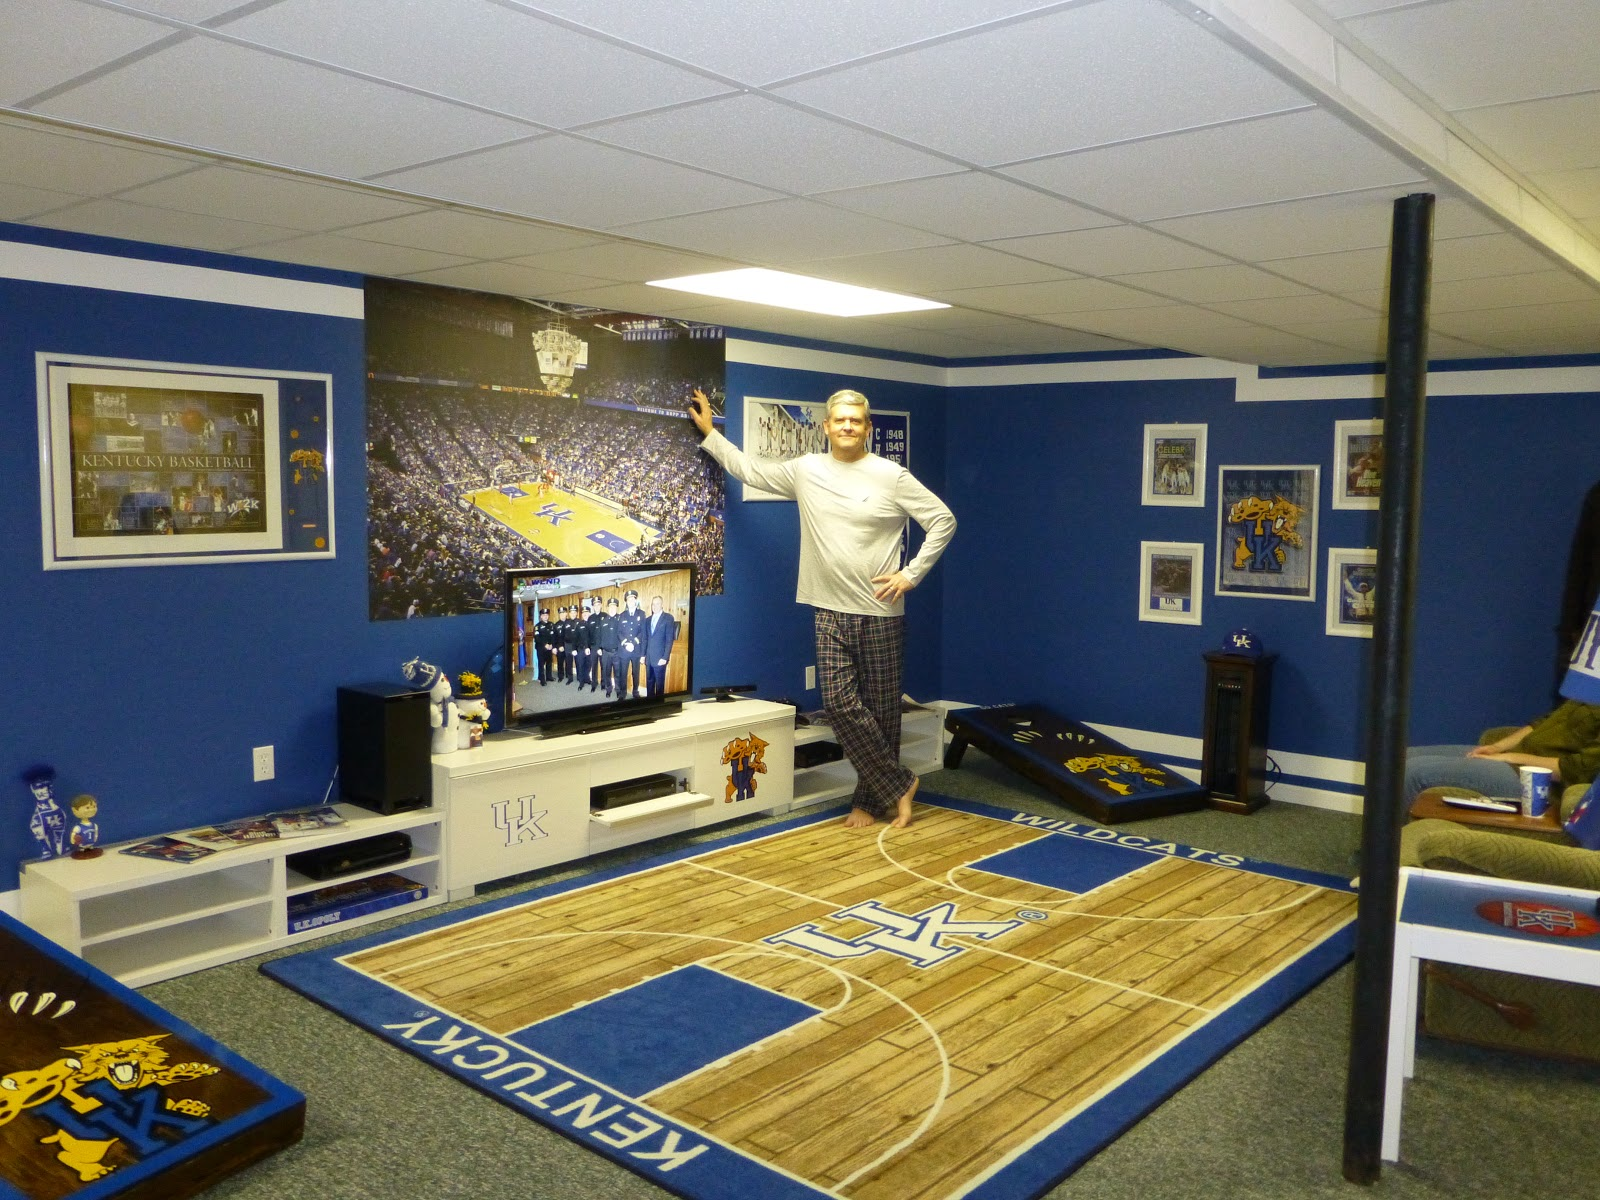 The Lazy Girl's Blog: All Out Kentucky Blue!